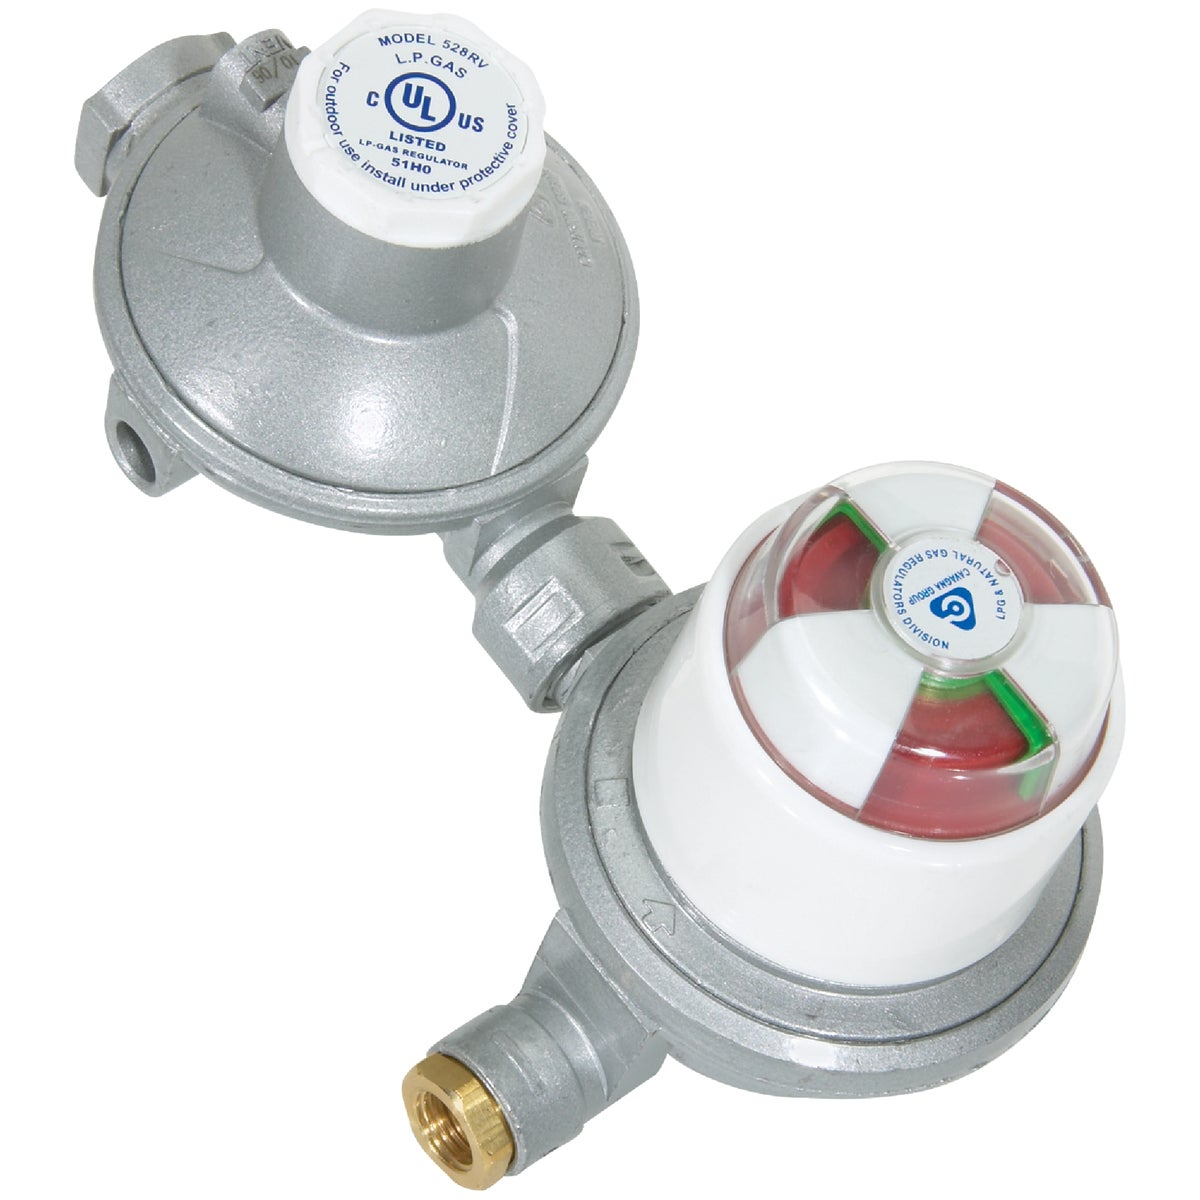 LP GAS REGULATOR